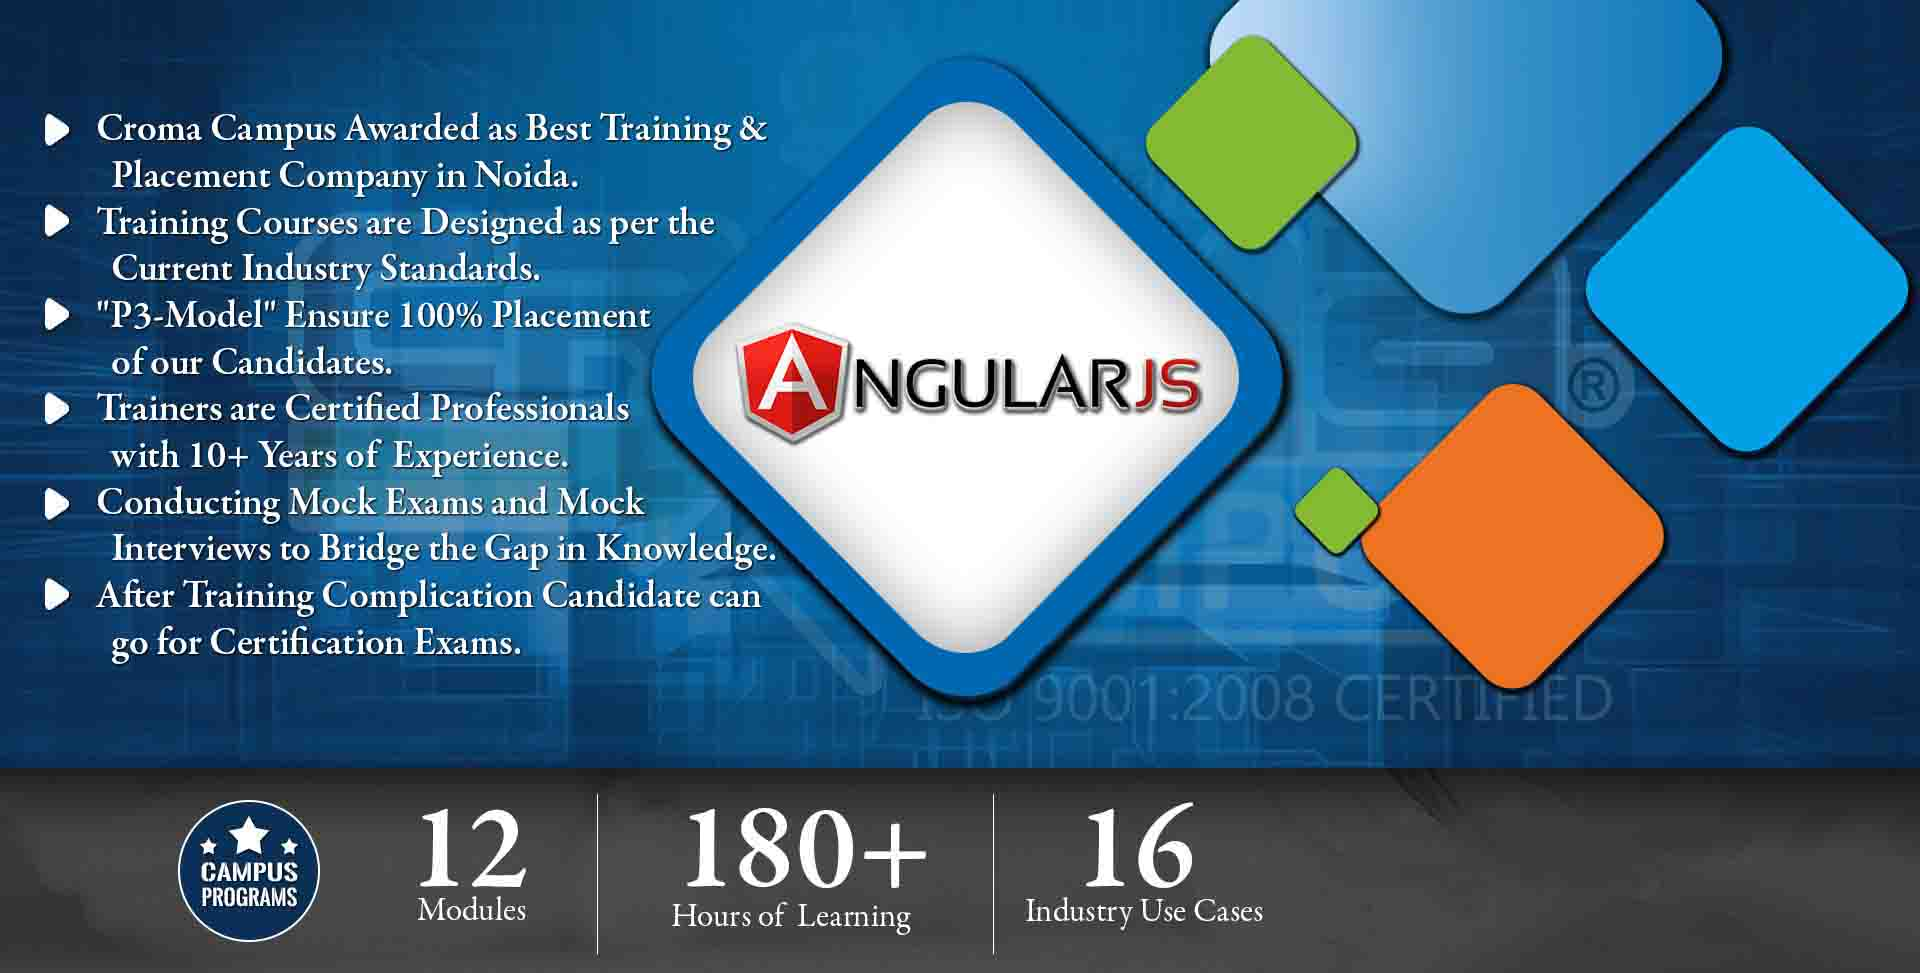 AngularJS Training in Delhi NCR- Croma Campus